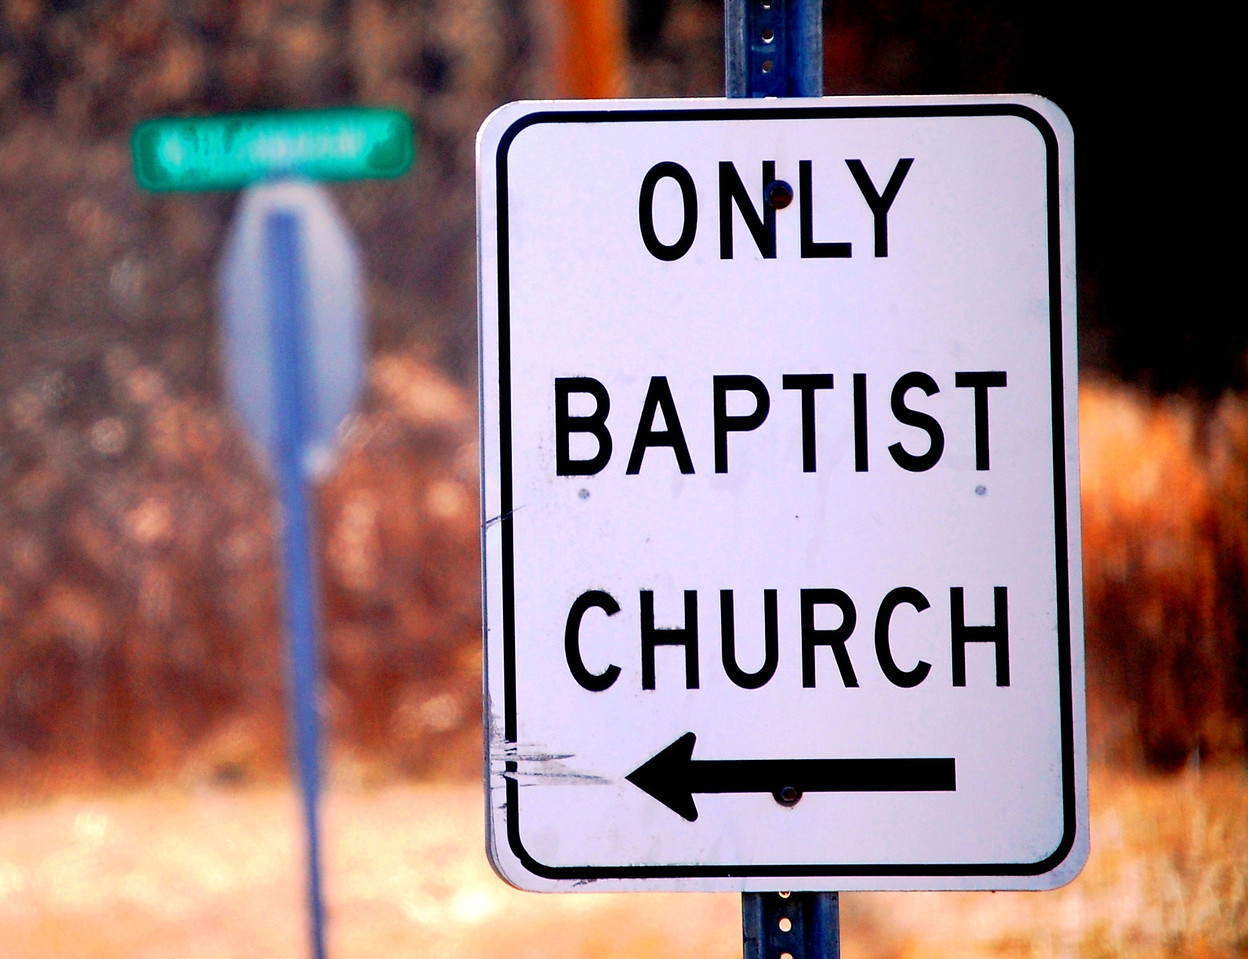 Sign to Only Baptist Church in Only, Tennessee